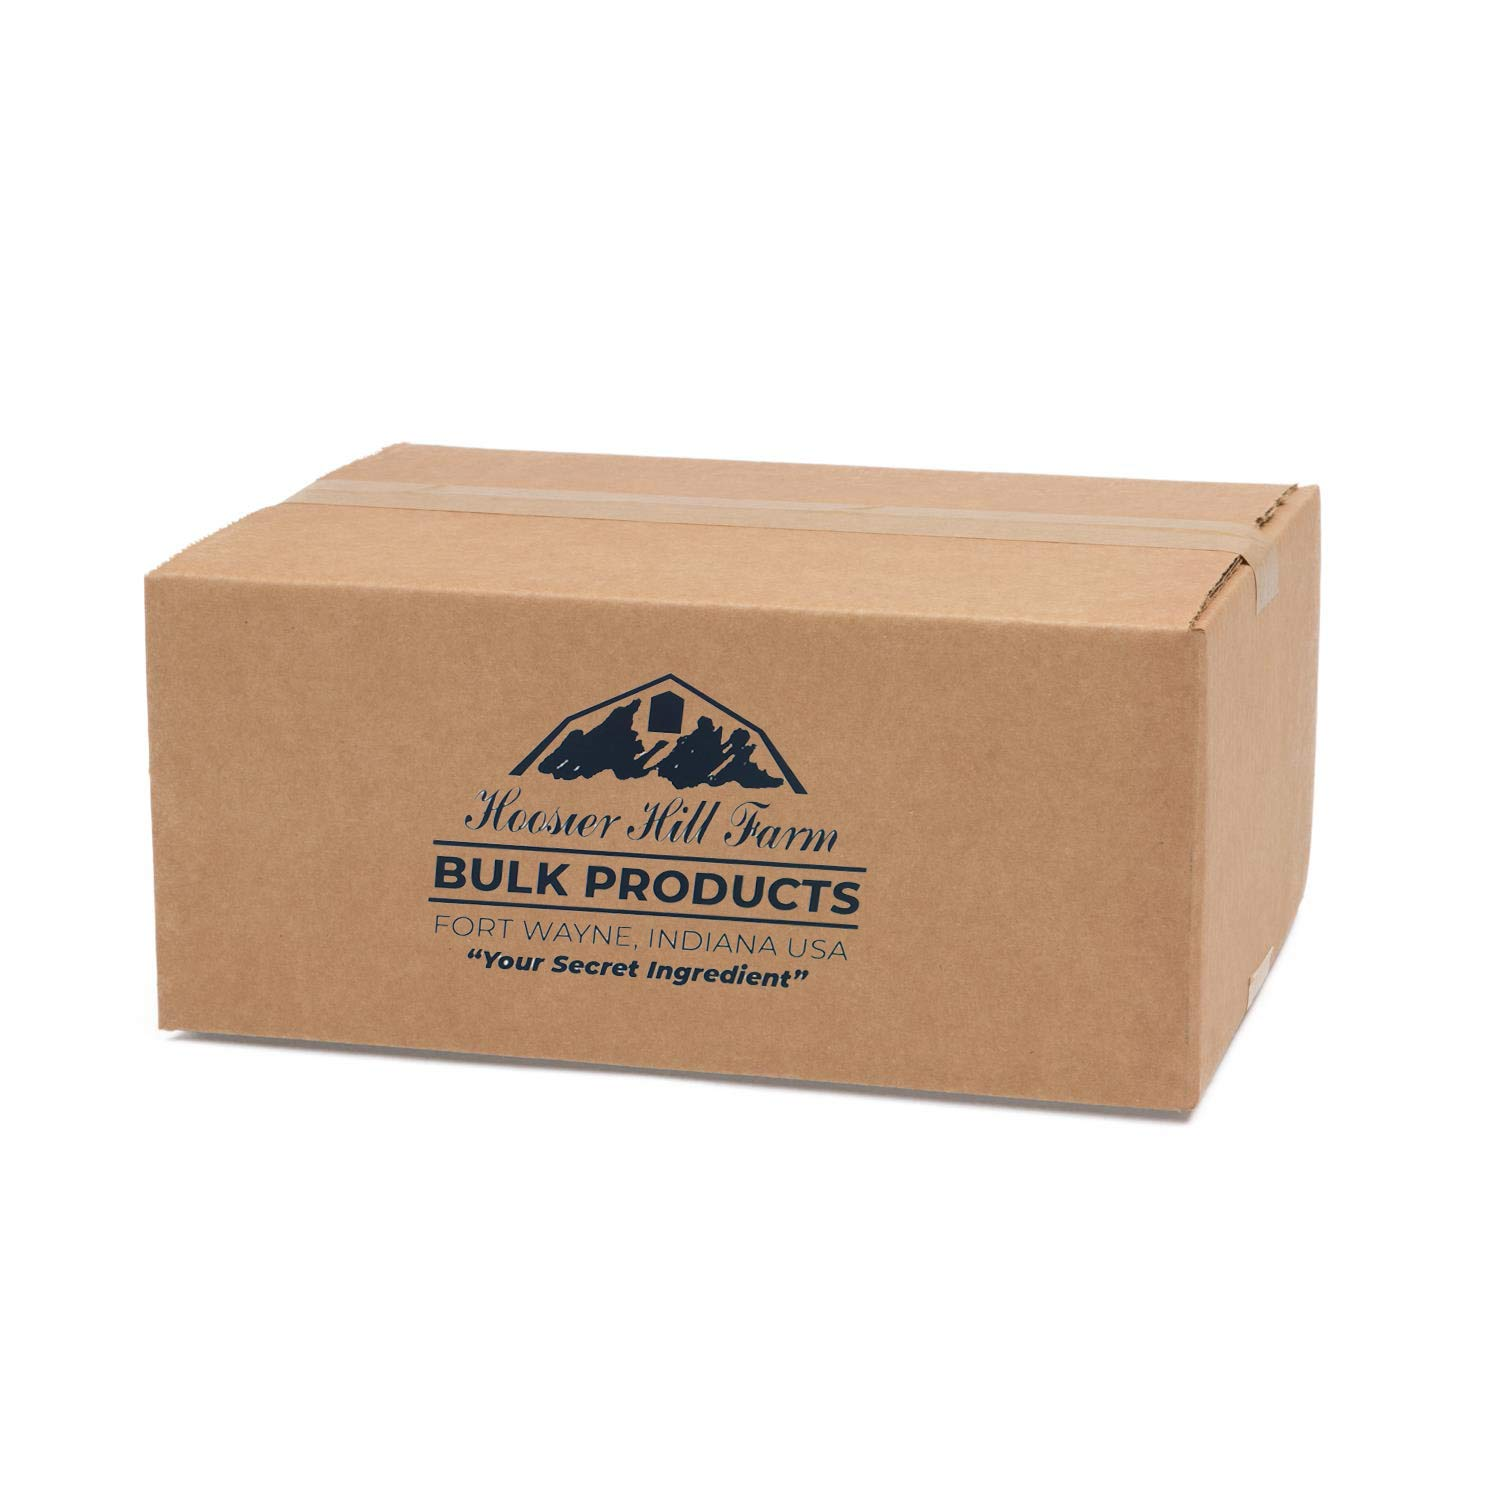 Hoosier Hill Farm Chocolate decorating sprinkles 25lb Bulk, Gluten Free and Made in the USA by Hoosier Hill Farm